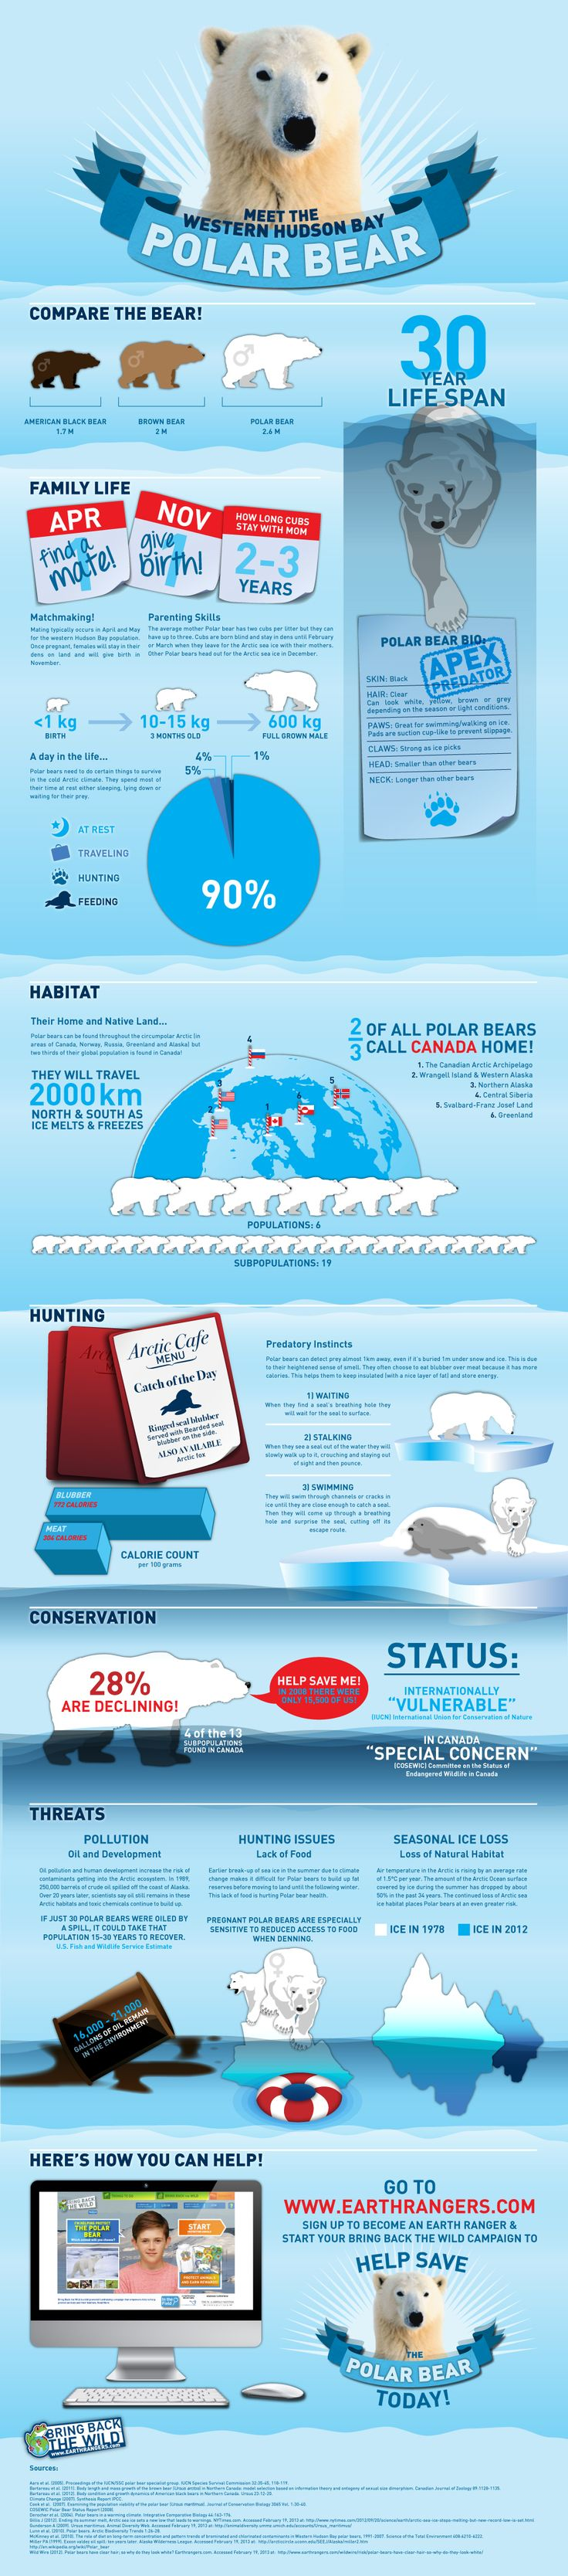 Happy International Polar Bear Day! To celebrate, discover some fun polar bear facts in this infographic and share it with your friends and family